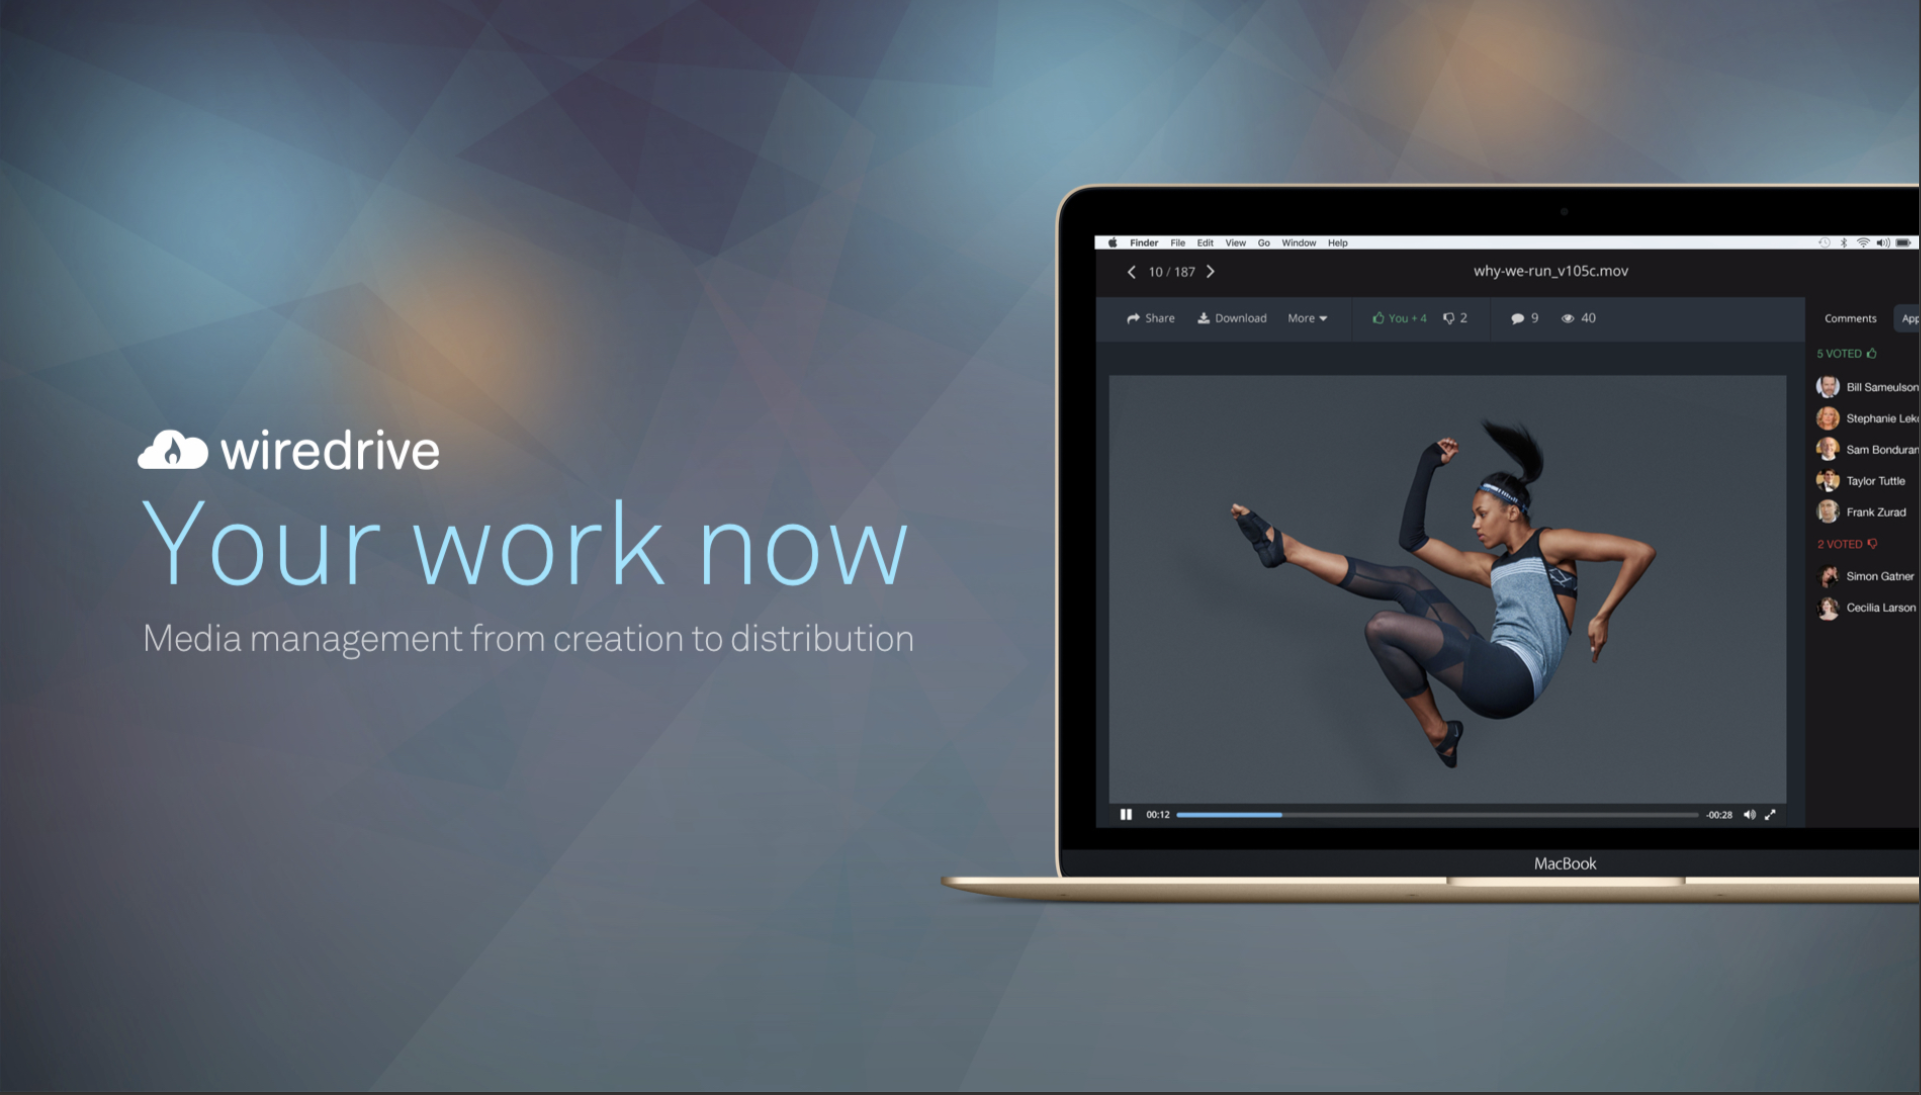 Wiredrive Demo - Media management and collaboration from creation to distribution